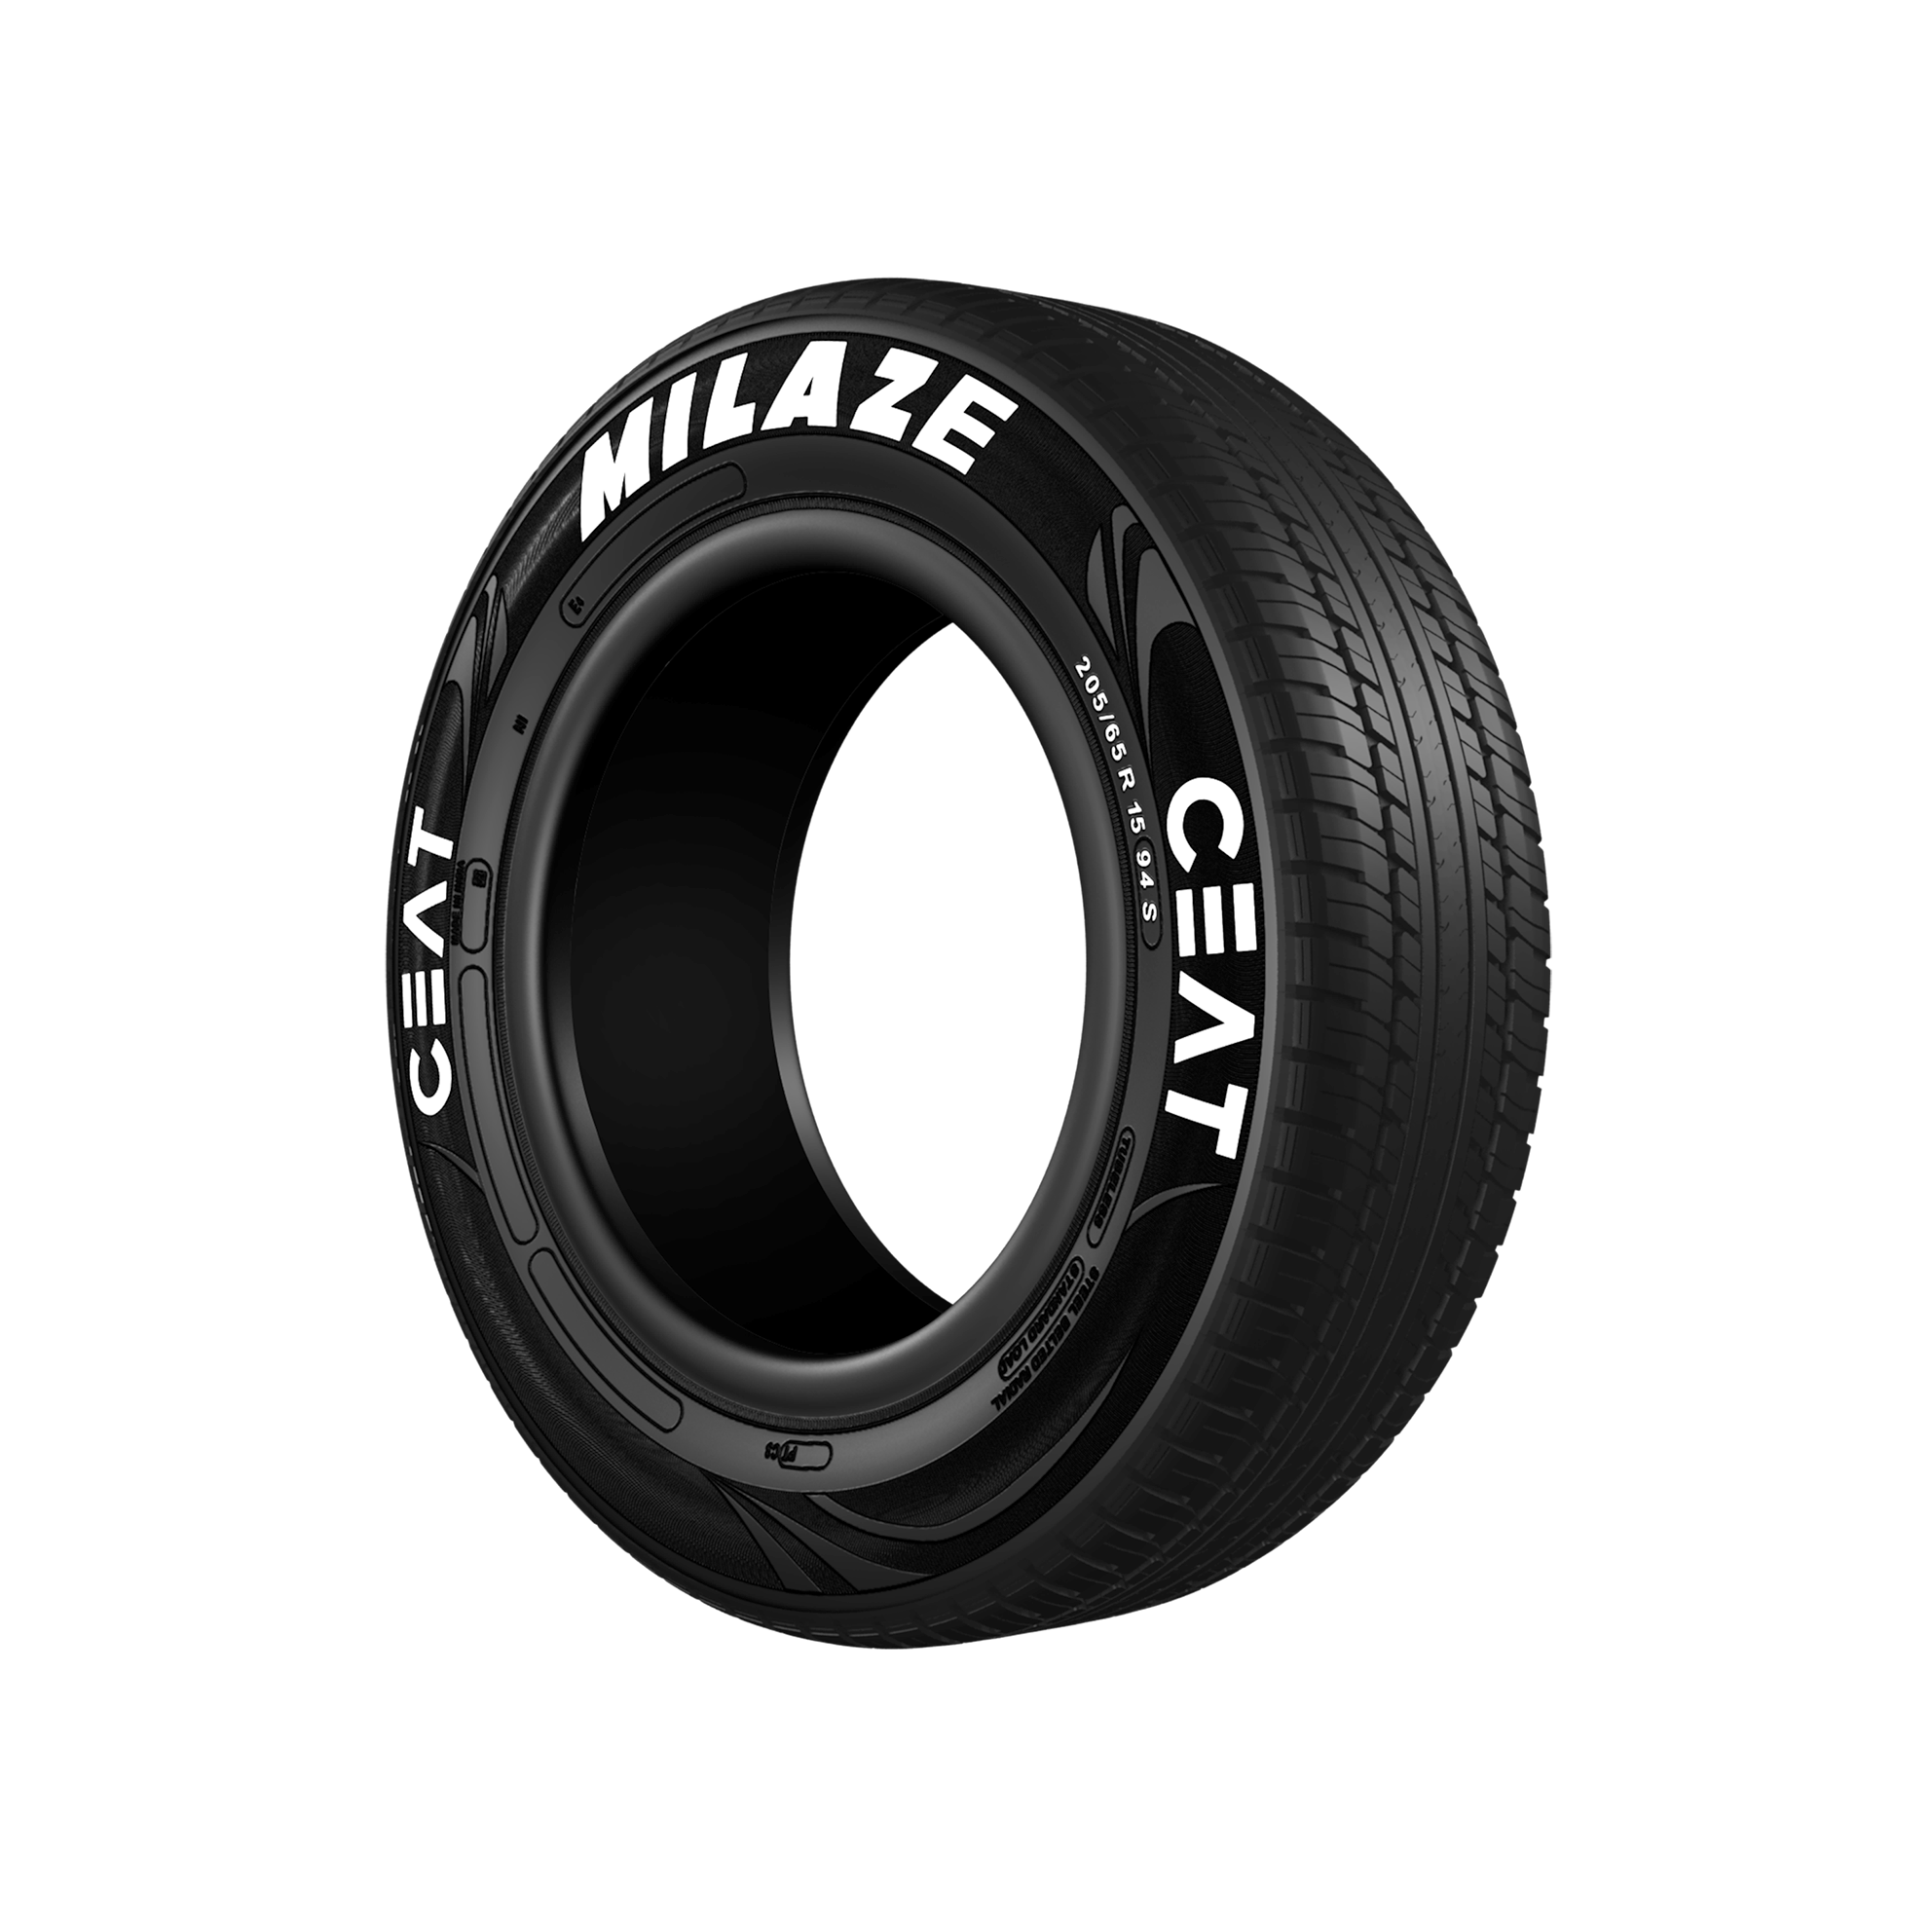 CEAT MILAZE 175/65 R 14 Requires Tube 82 T Car Tyre